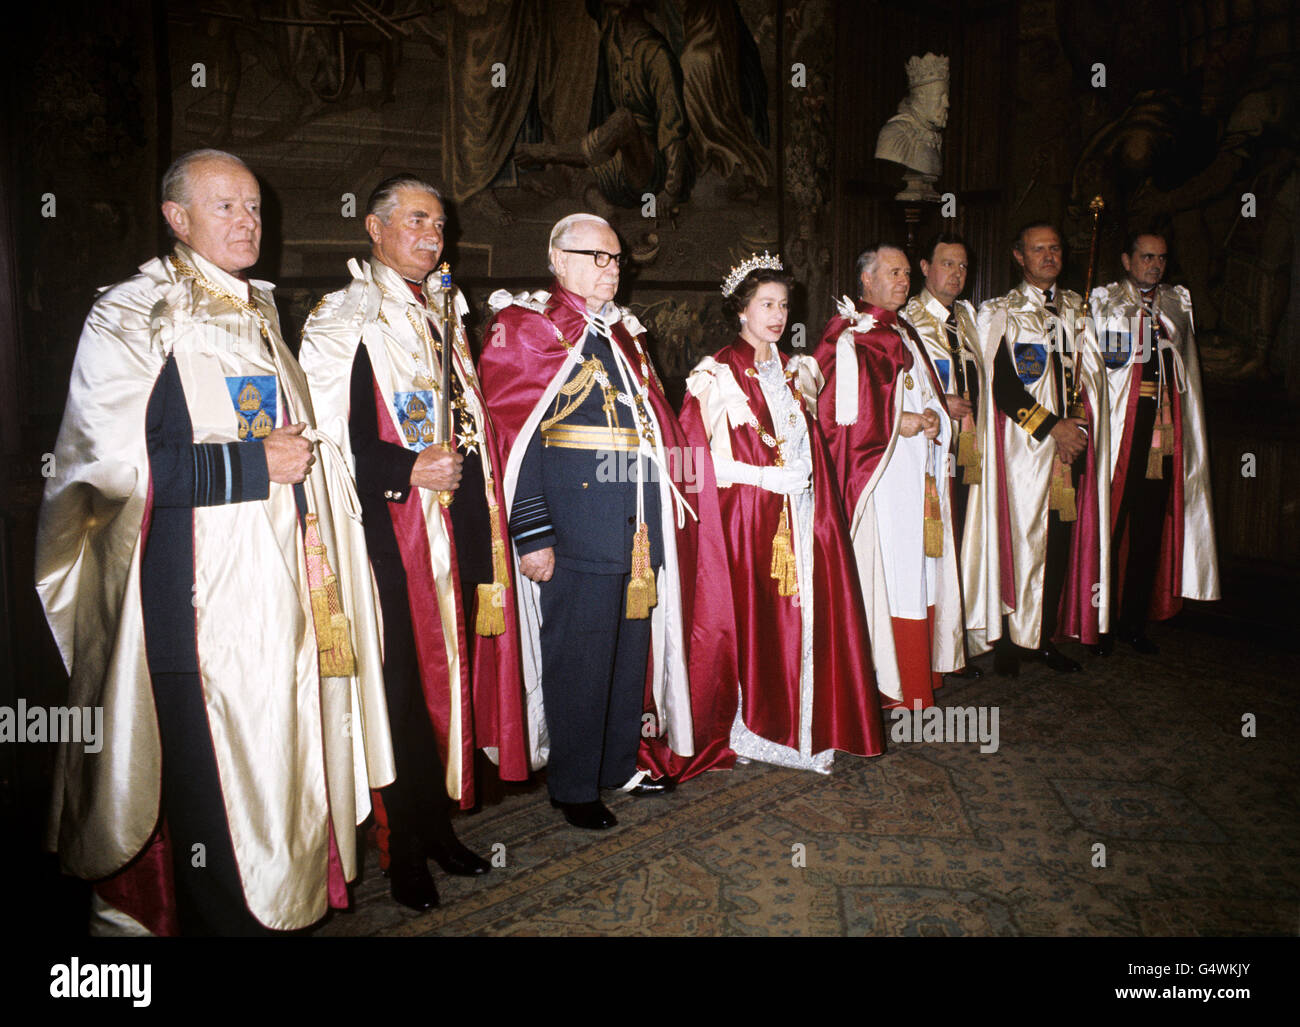 Royalty - Order of the Bath - Westminster Abbey - Stock Image